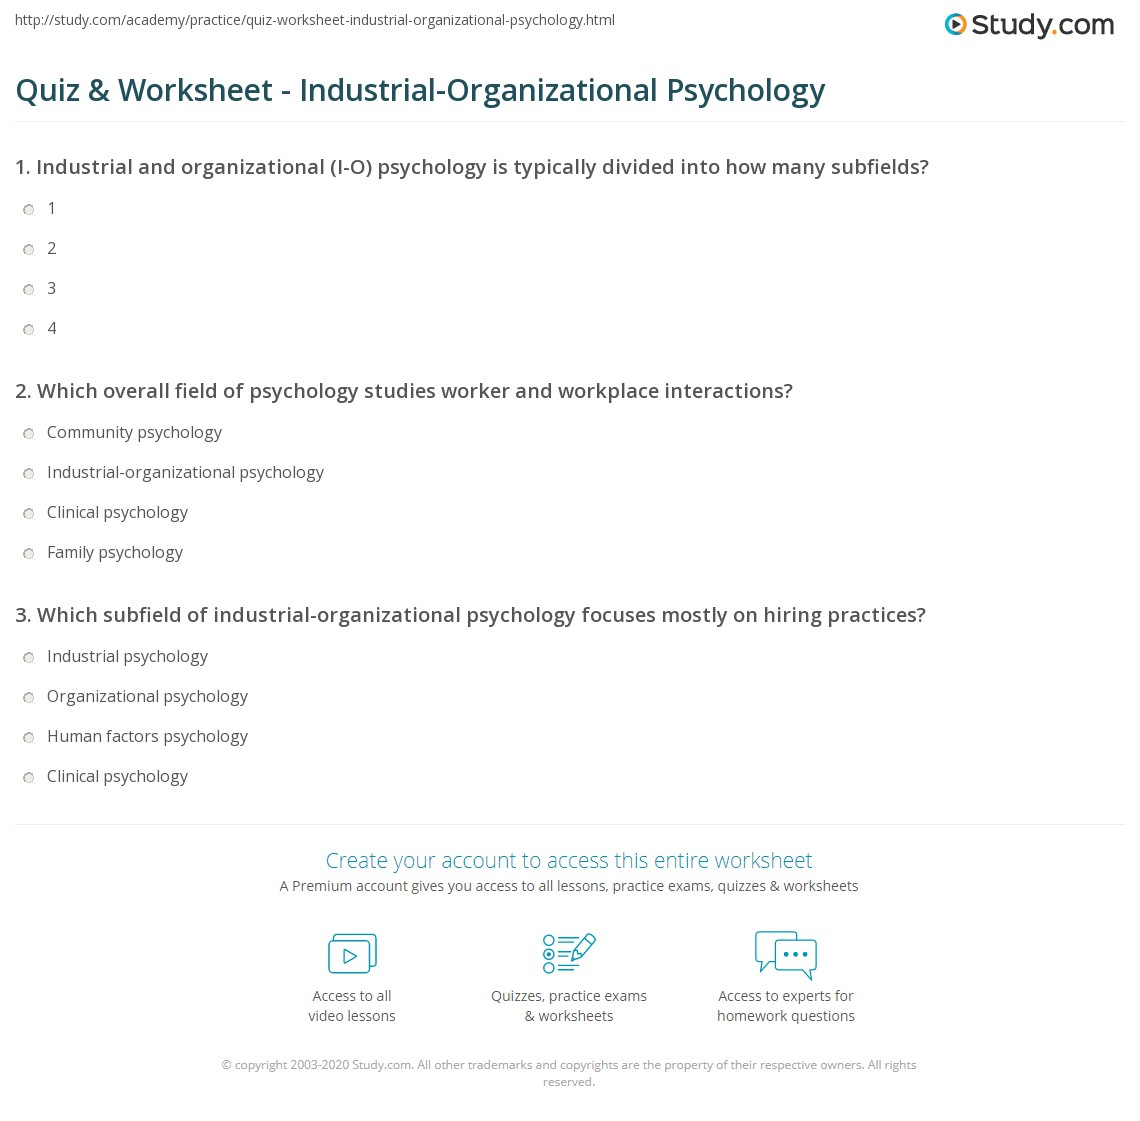 inustrial organizational psychology worksheet Online safety degrees at columbia southern university columbia southern university offers completely online safety degreescovering a range of subjects such as hazardous materials management, construction safety, osha safety training and accident investigation, our associate, bachelor's and master's degree programs are designed to.